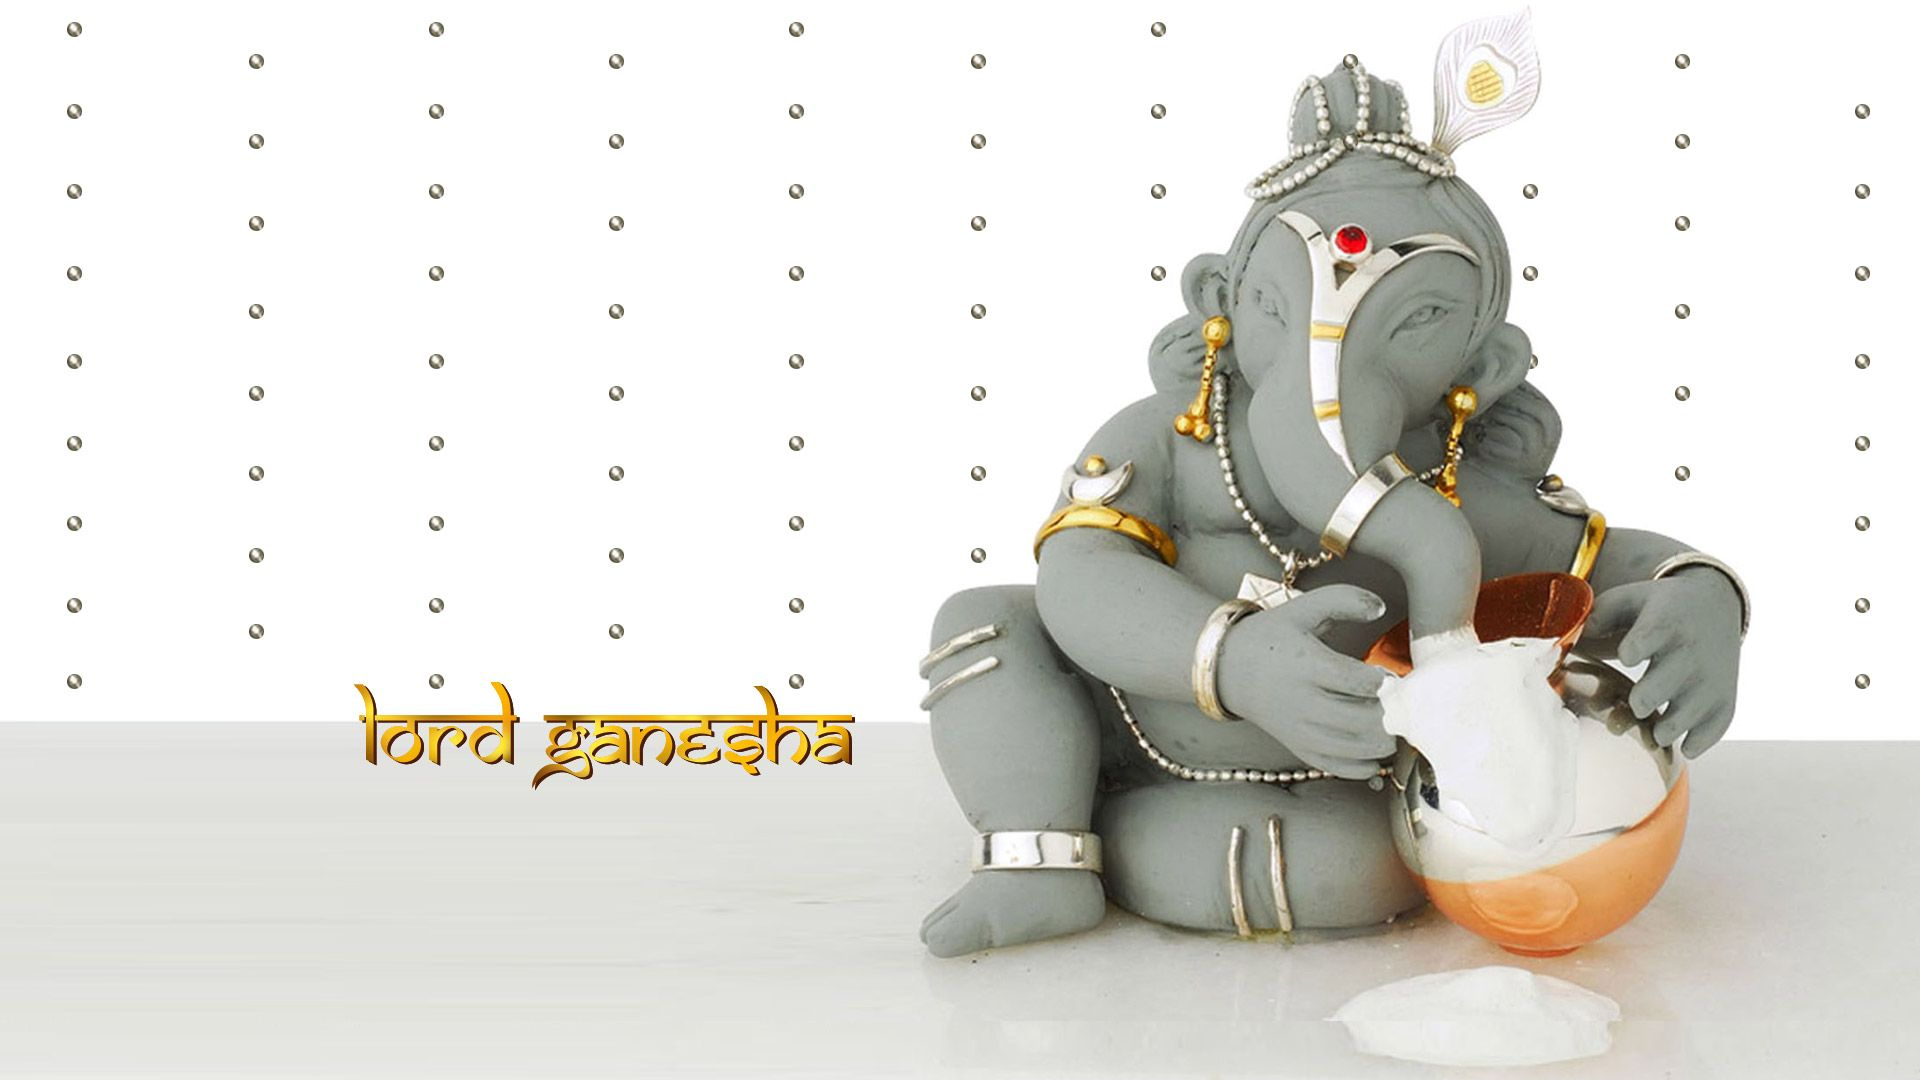 Cute Ganesha Hd Wallpaper Lord Ganesha God Hd Wallpapers